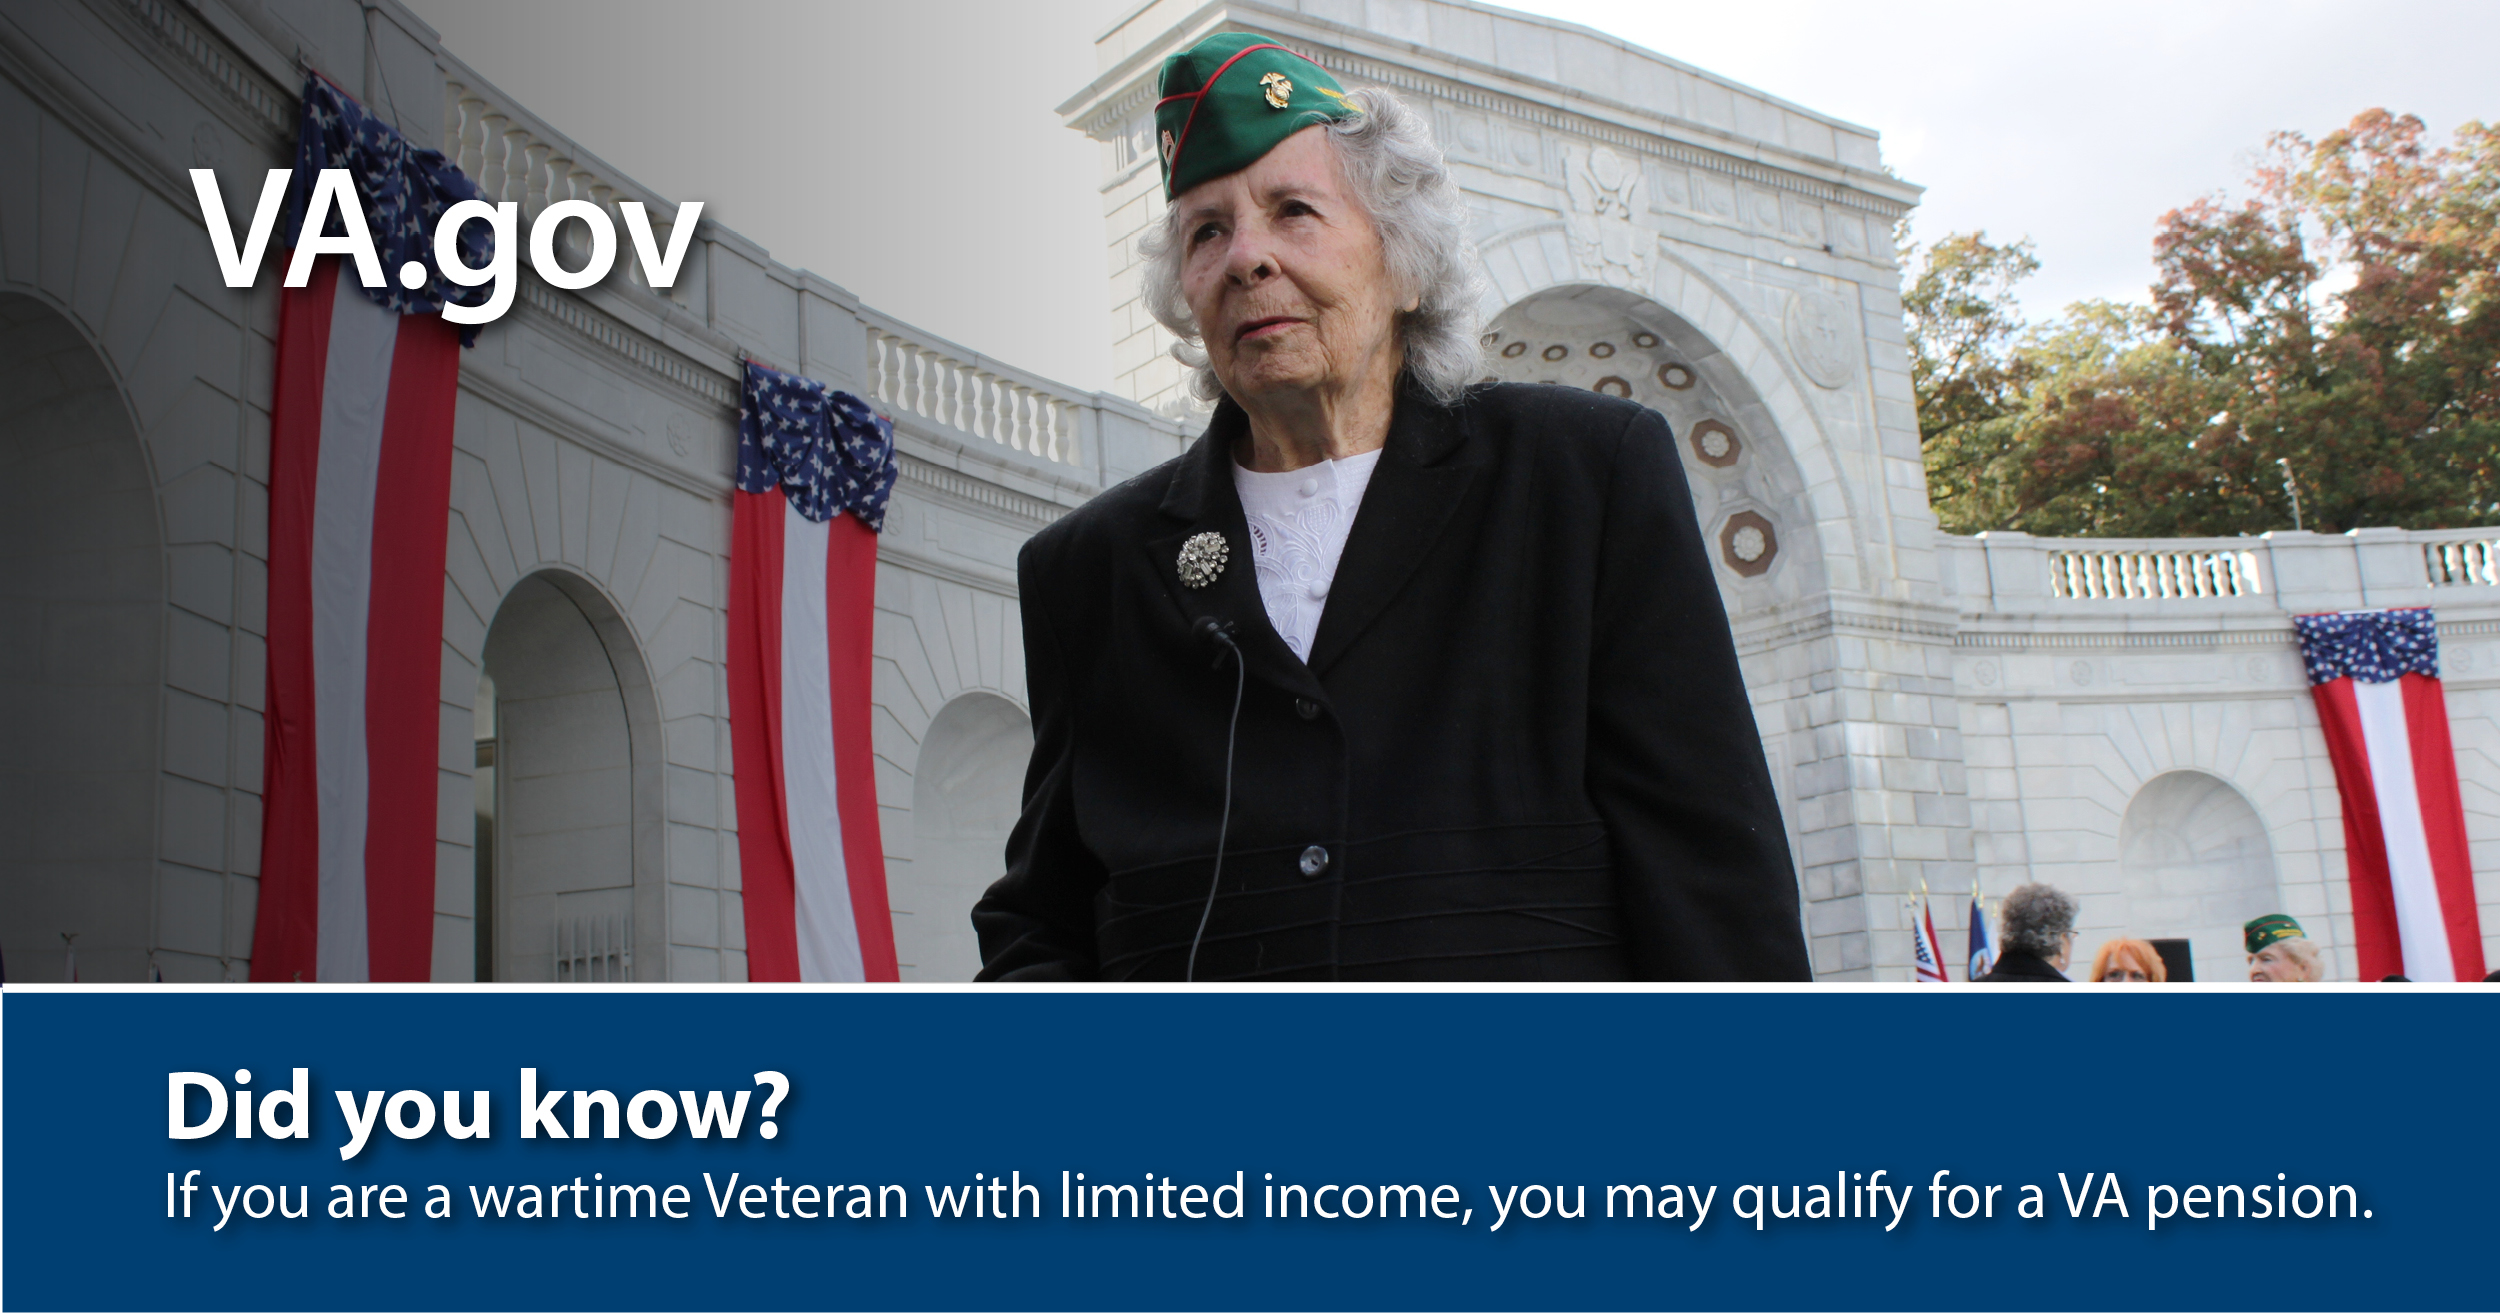 Did you know? If you are a wartime Veteran with limited income, you may qualify for a VA pension.